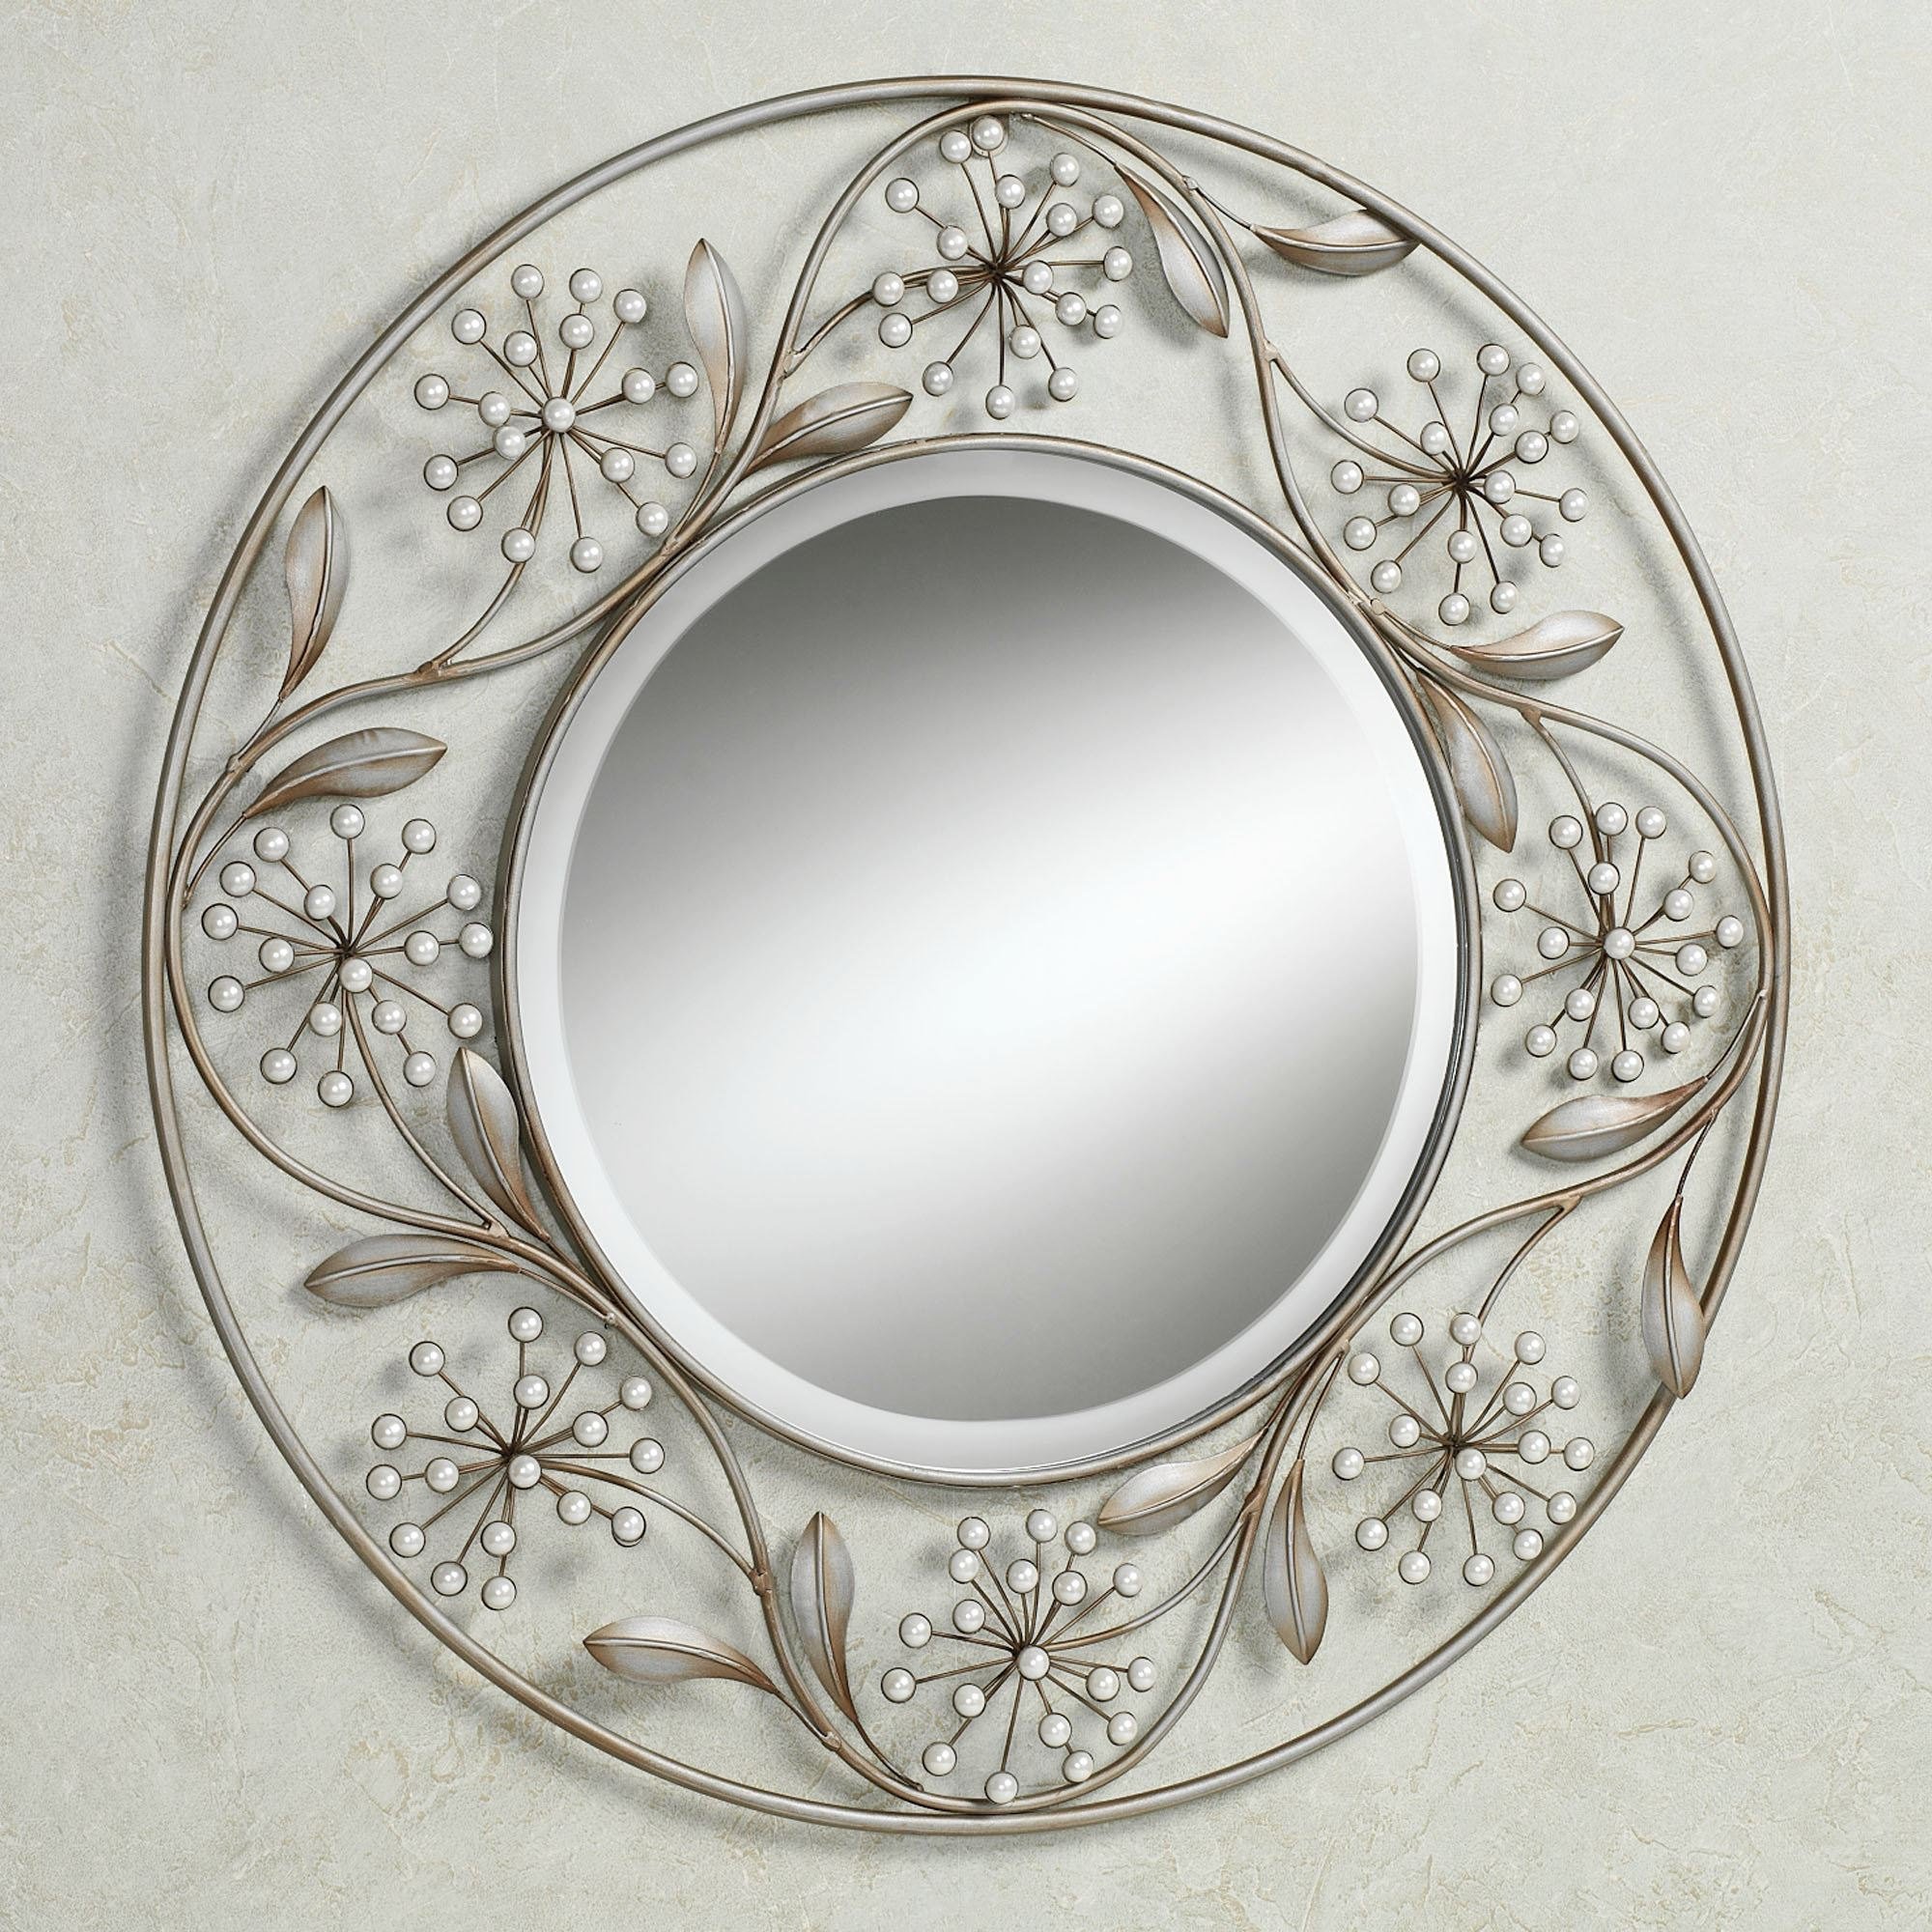 Pearlette Round Metal Wall Mirror Inside Decorative Round Wall Mirrors (View 3 of 20)